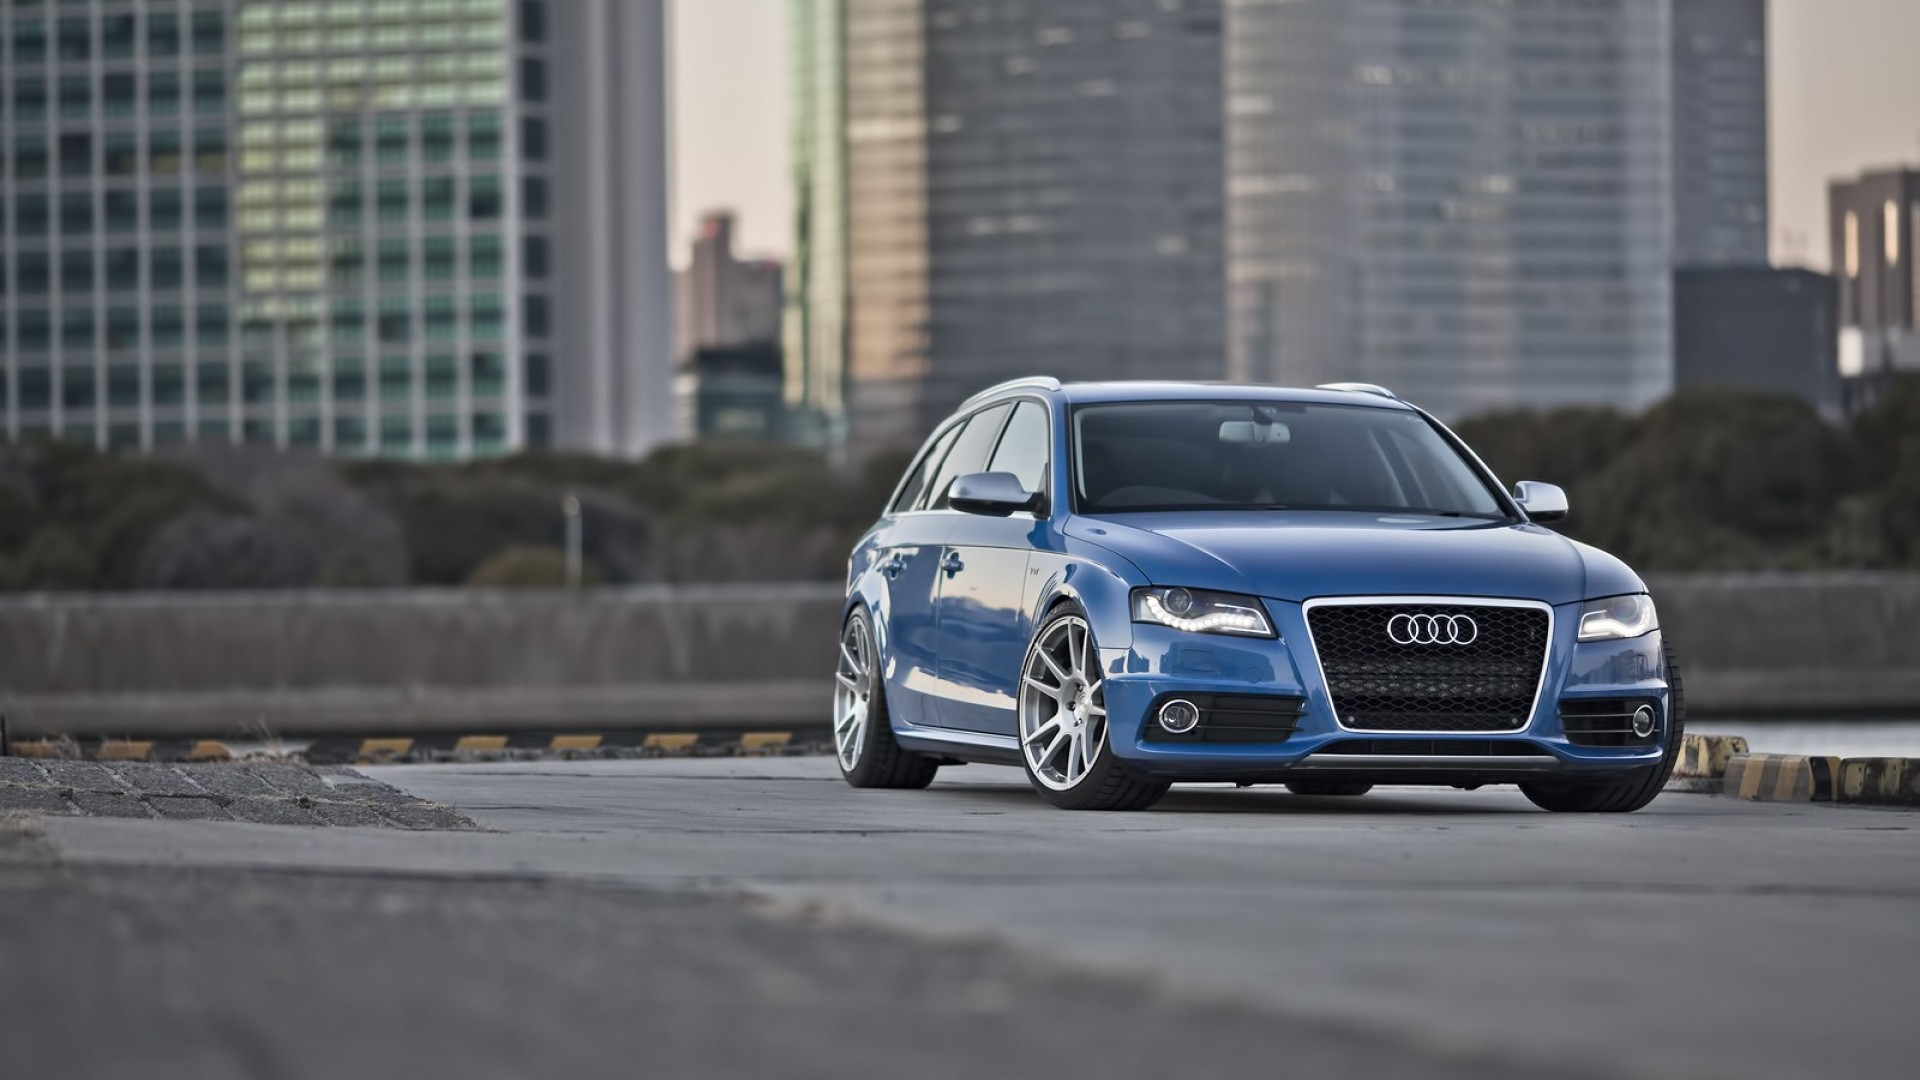 Audi S4 Blue Hd Desktop Wallpapers 4k Hd